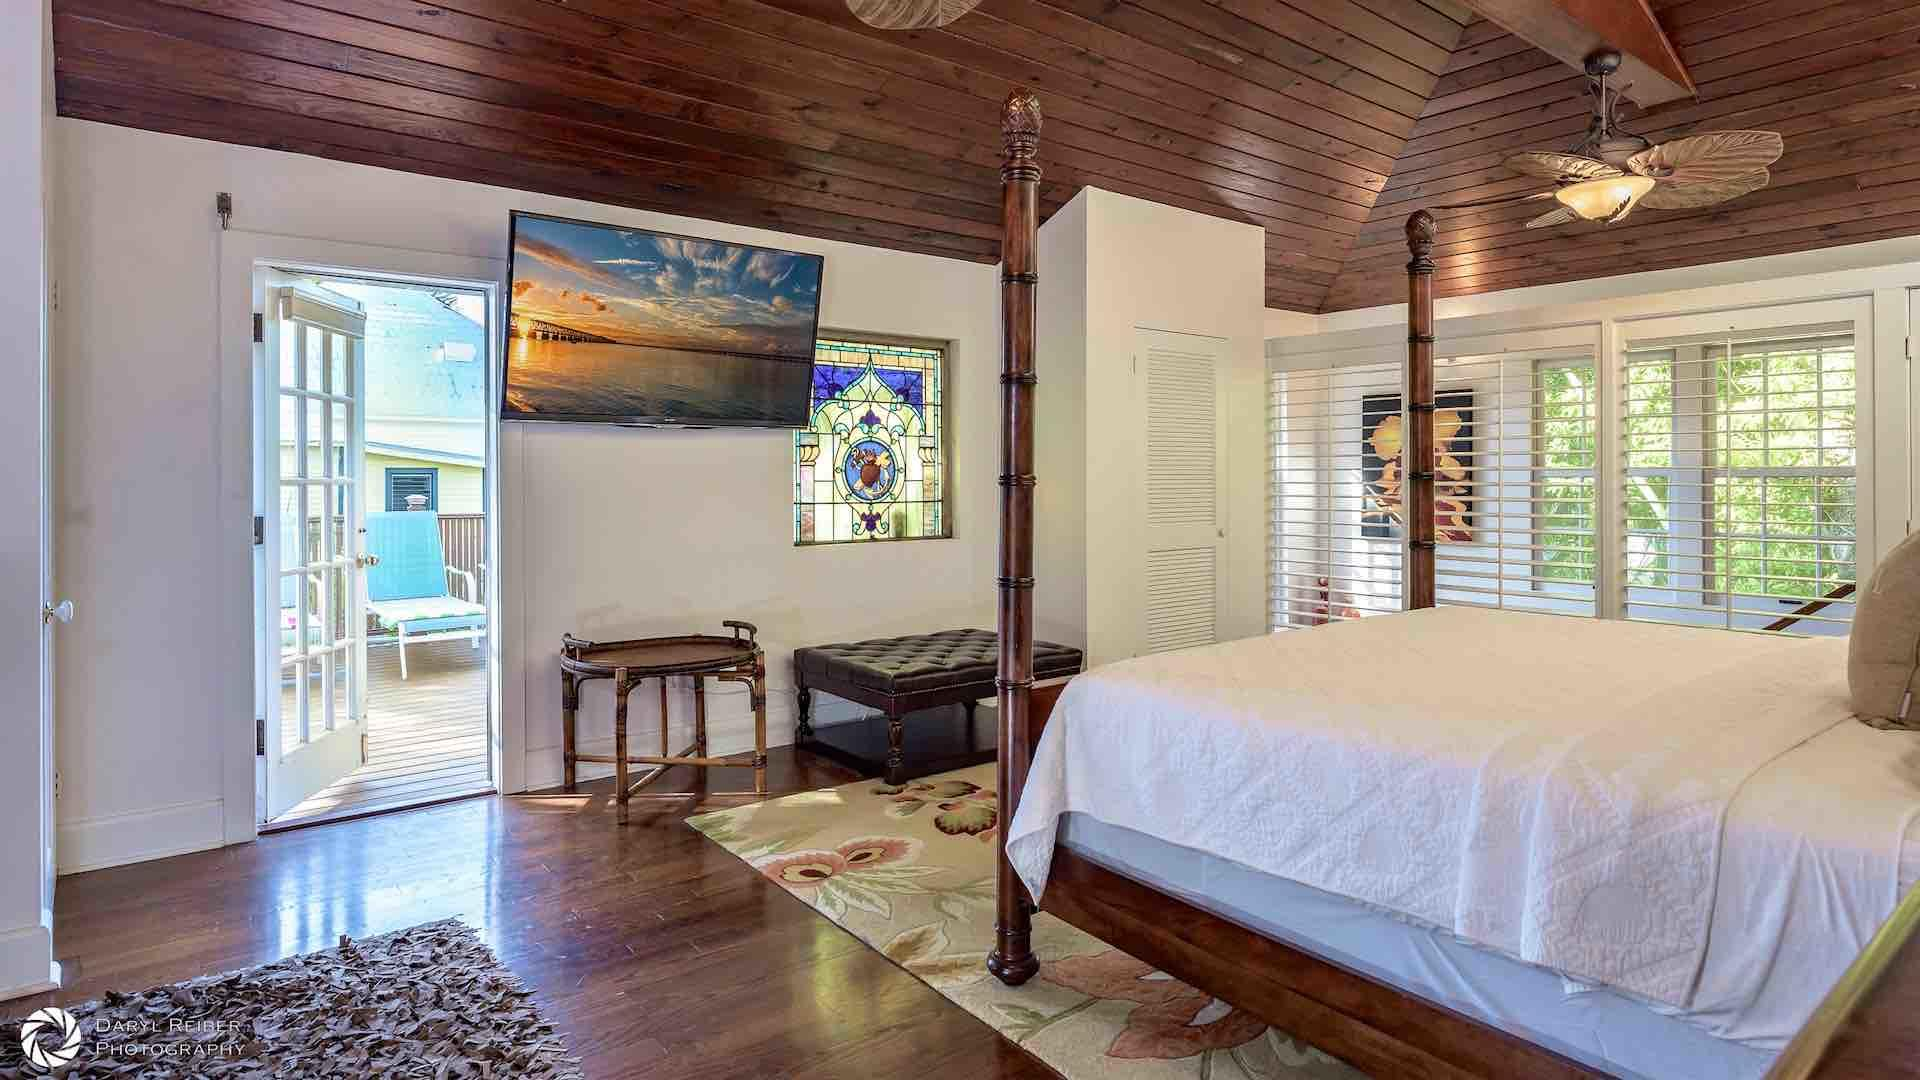 The master bedroom has a large mounted flat screen TV and two overhead fans...